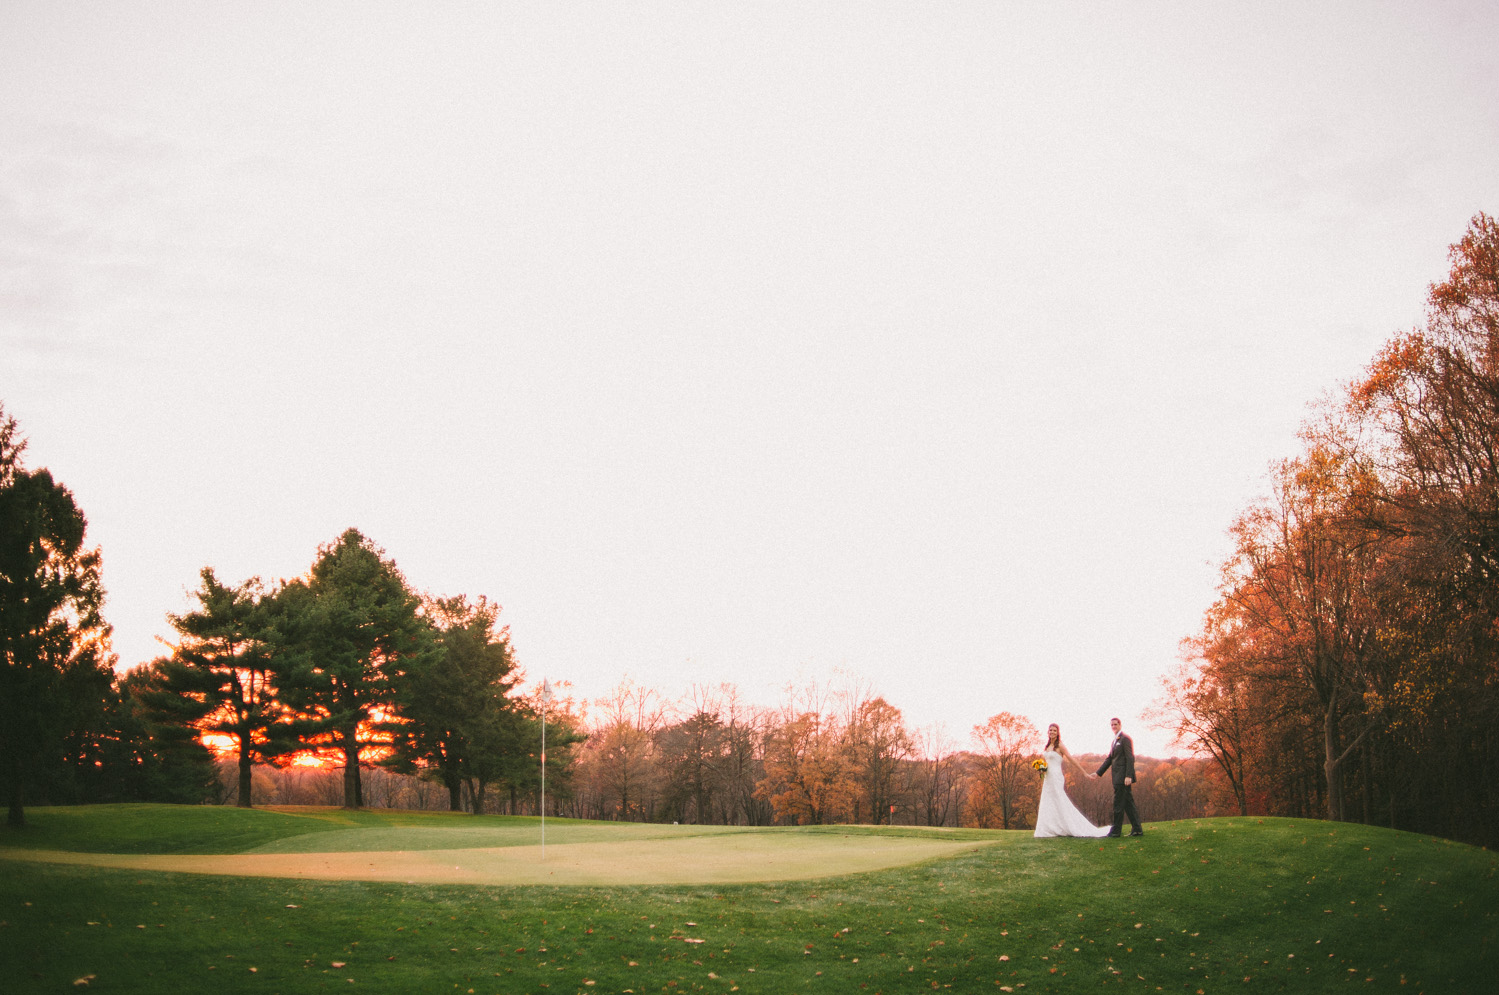 deerfield-country-club-wedding-photography-48.jpg